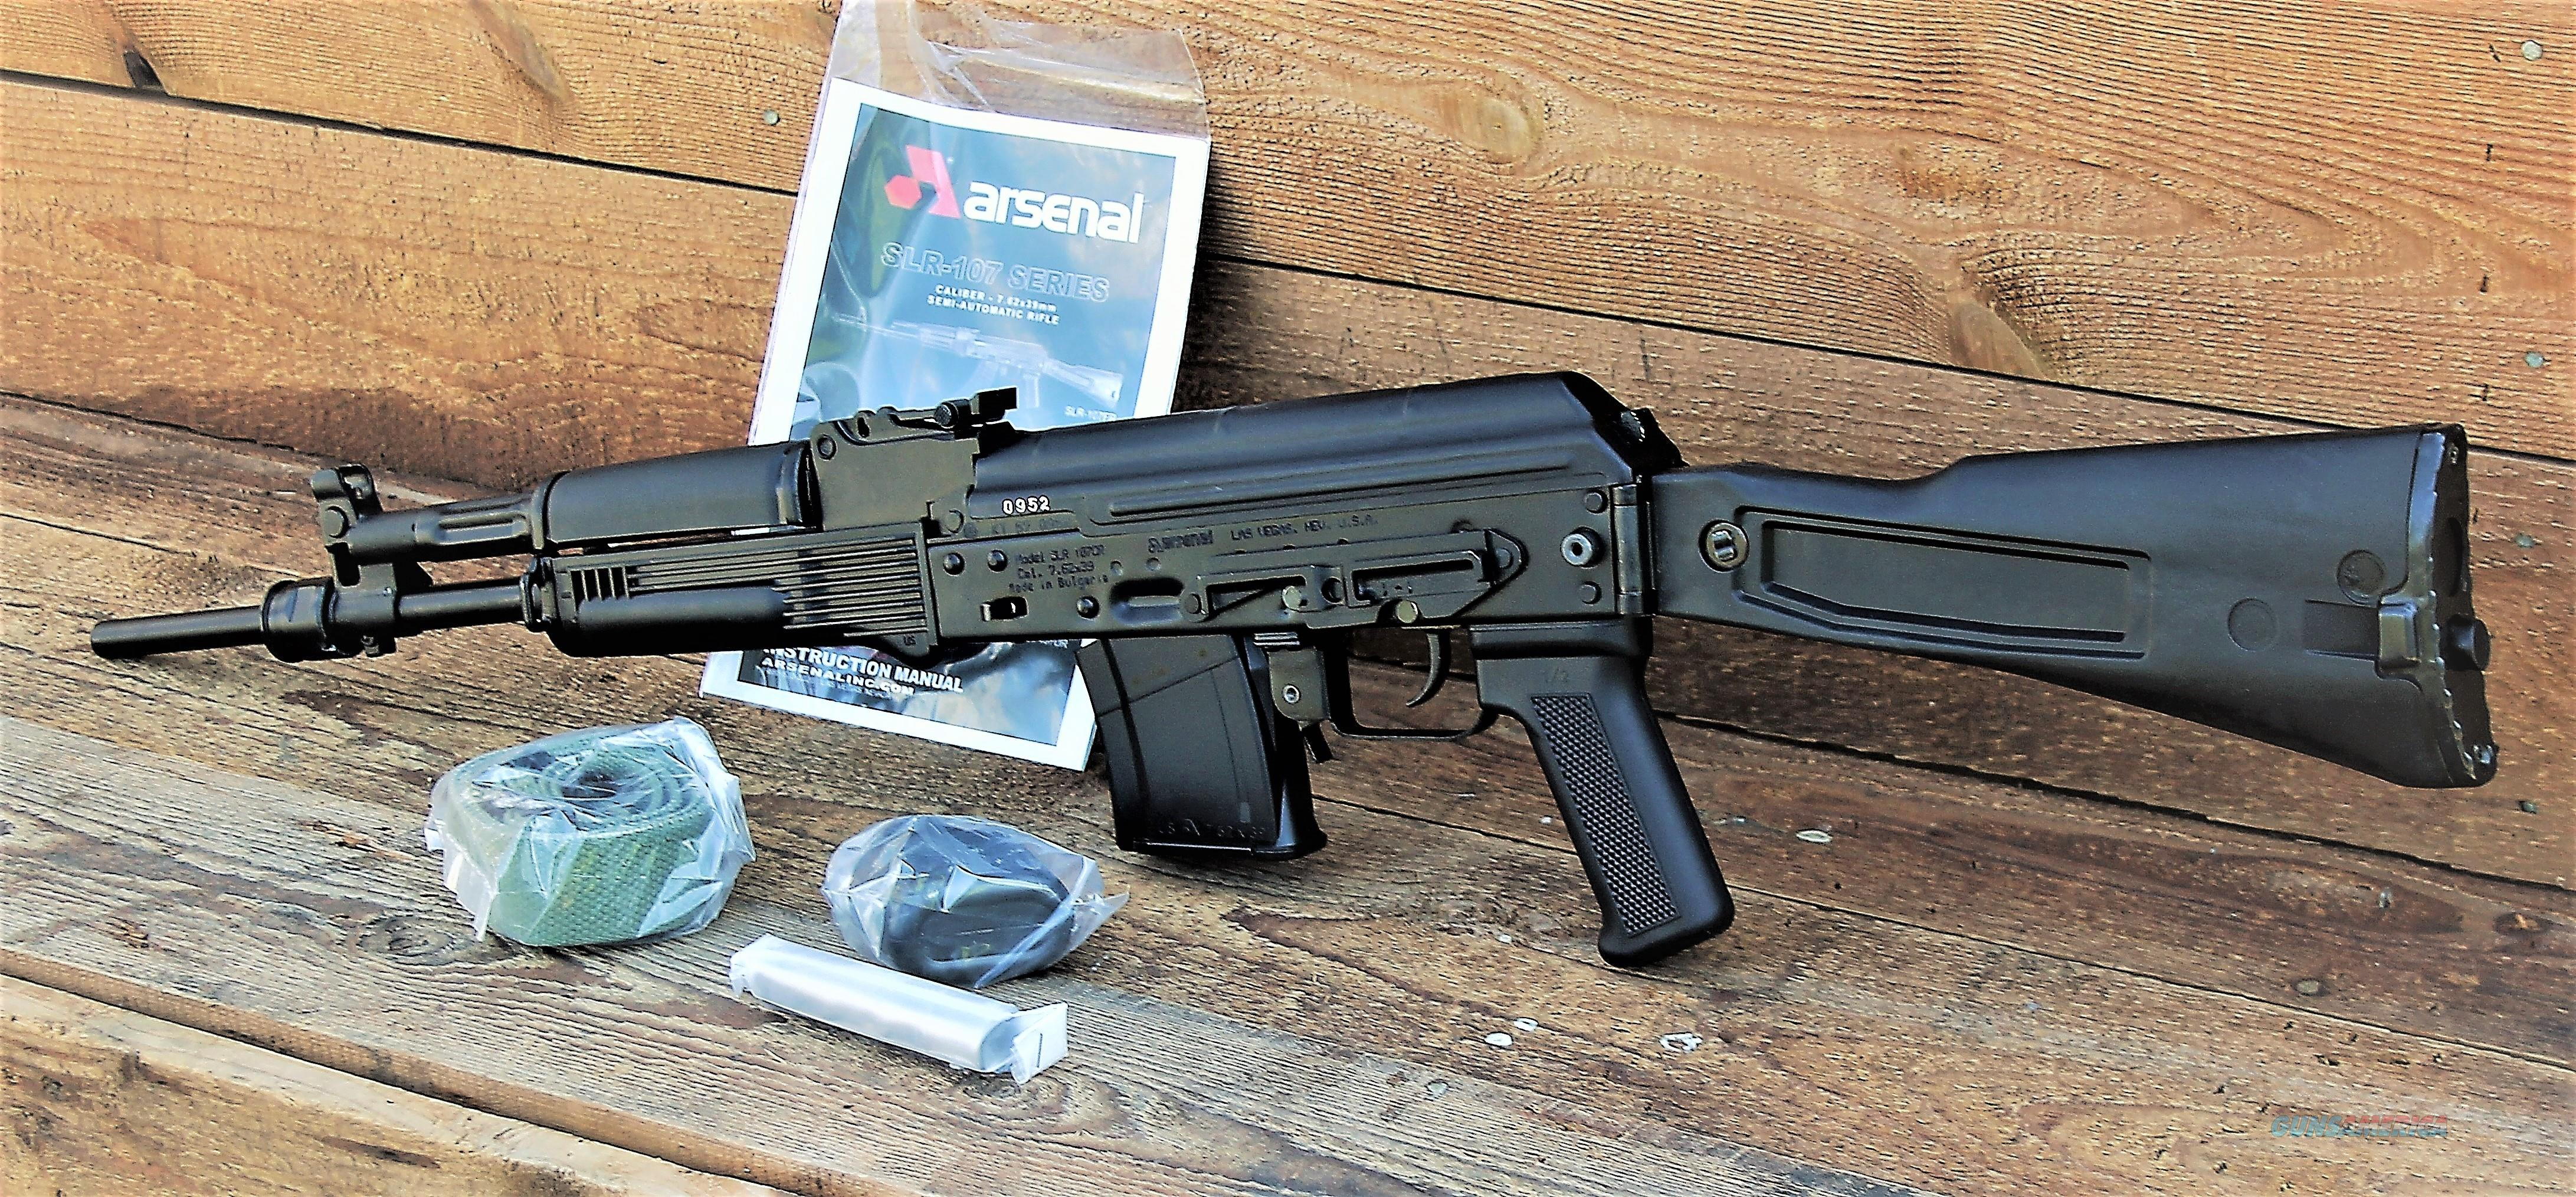 "Easy Pay $105 Arsenal USA SLR107CR SLR107-61 Black AK-47 7.62x39mm 16.25"" Chrome Lined Hammer Forged Barrel with 1:9.44 Twist AK47 Threaded Muzzle Bulgarian Made Stamped Receiver Side Rail for Optic Mount Folding Stock Polymer Furniture  Guns > Rifles > AK-47 Rifles (and copies) > Folding Stock"